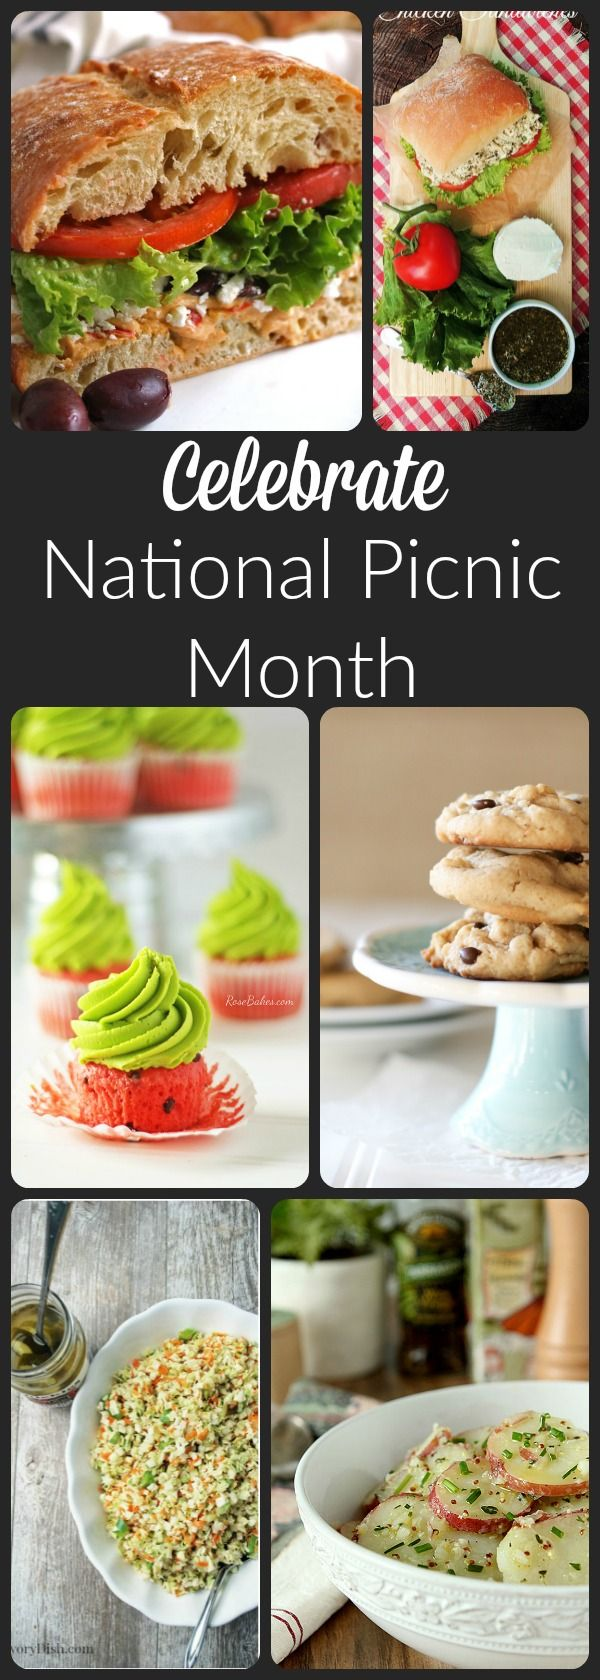 Picnic Menu Ideas for National Picnic Month. Recipes for main dishes, sides and desserts!